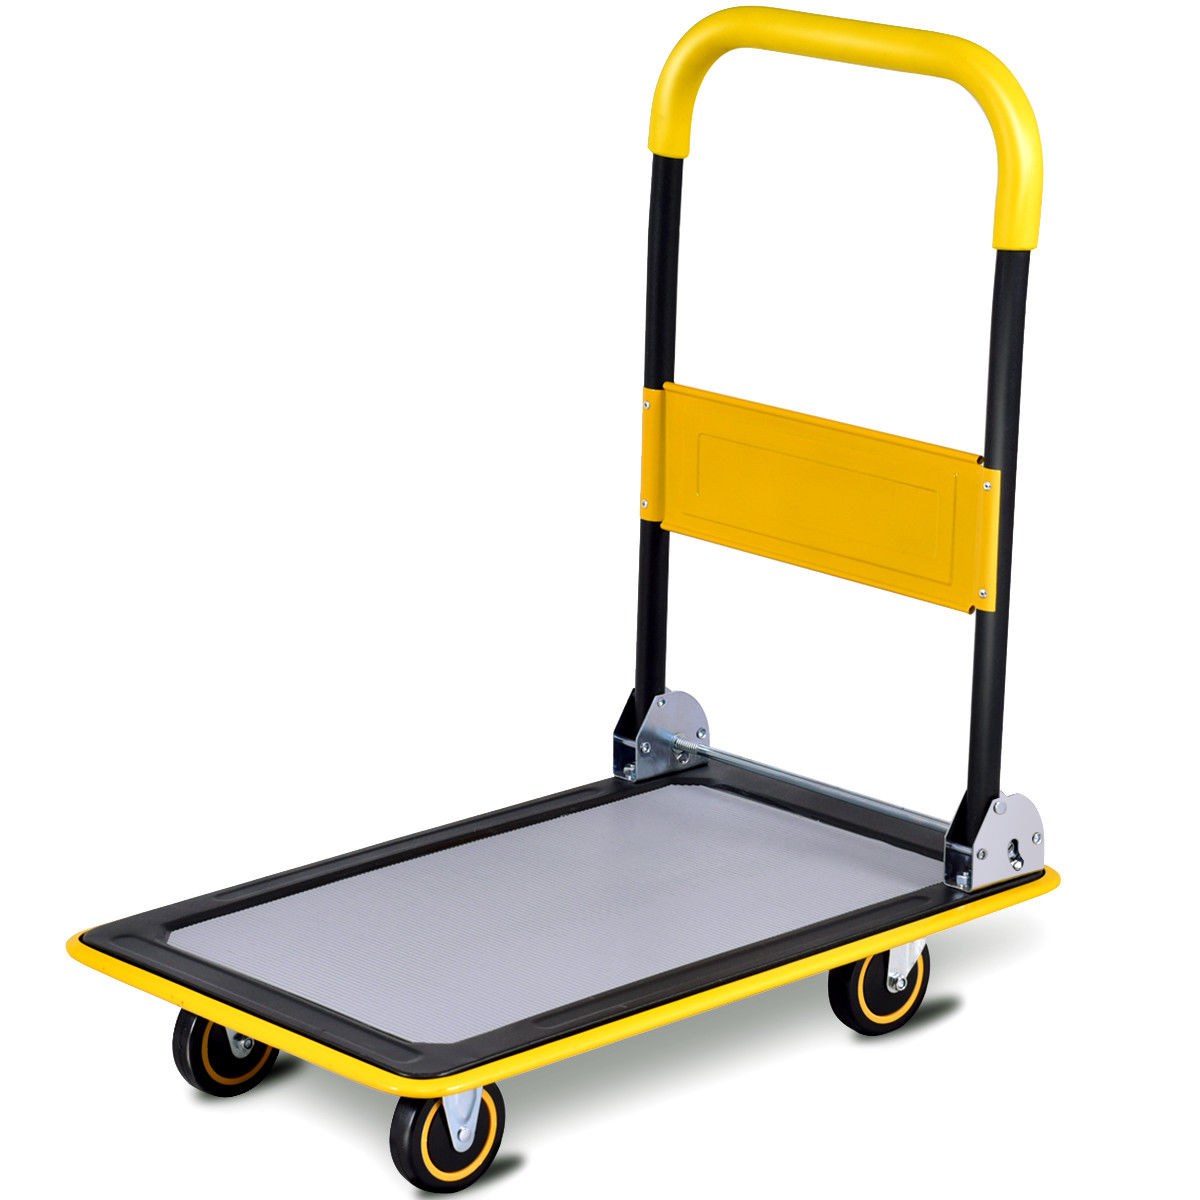 Costway 330lbs Folding Platform Cart Dolly Push Hand Truck Moving Warehouse Foldable